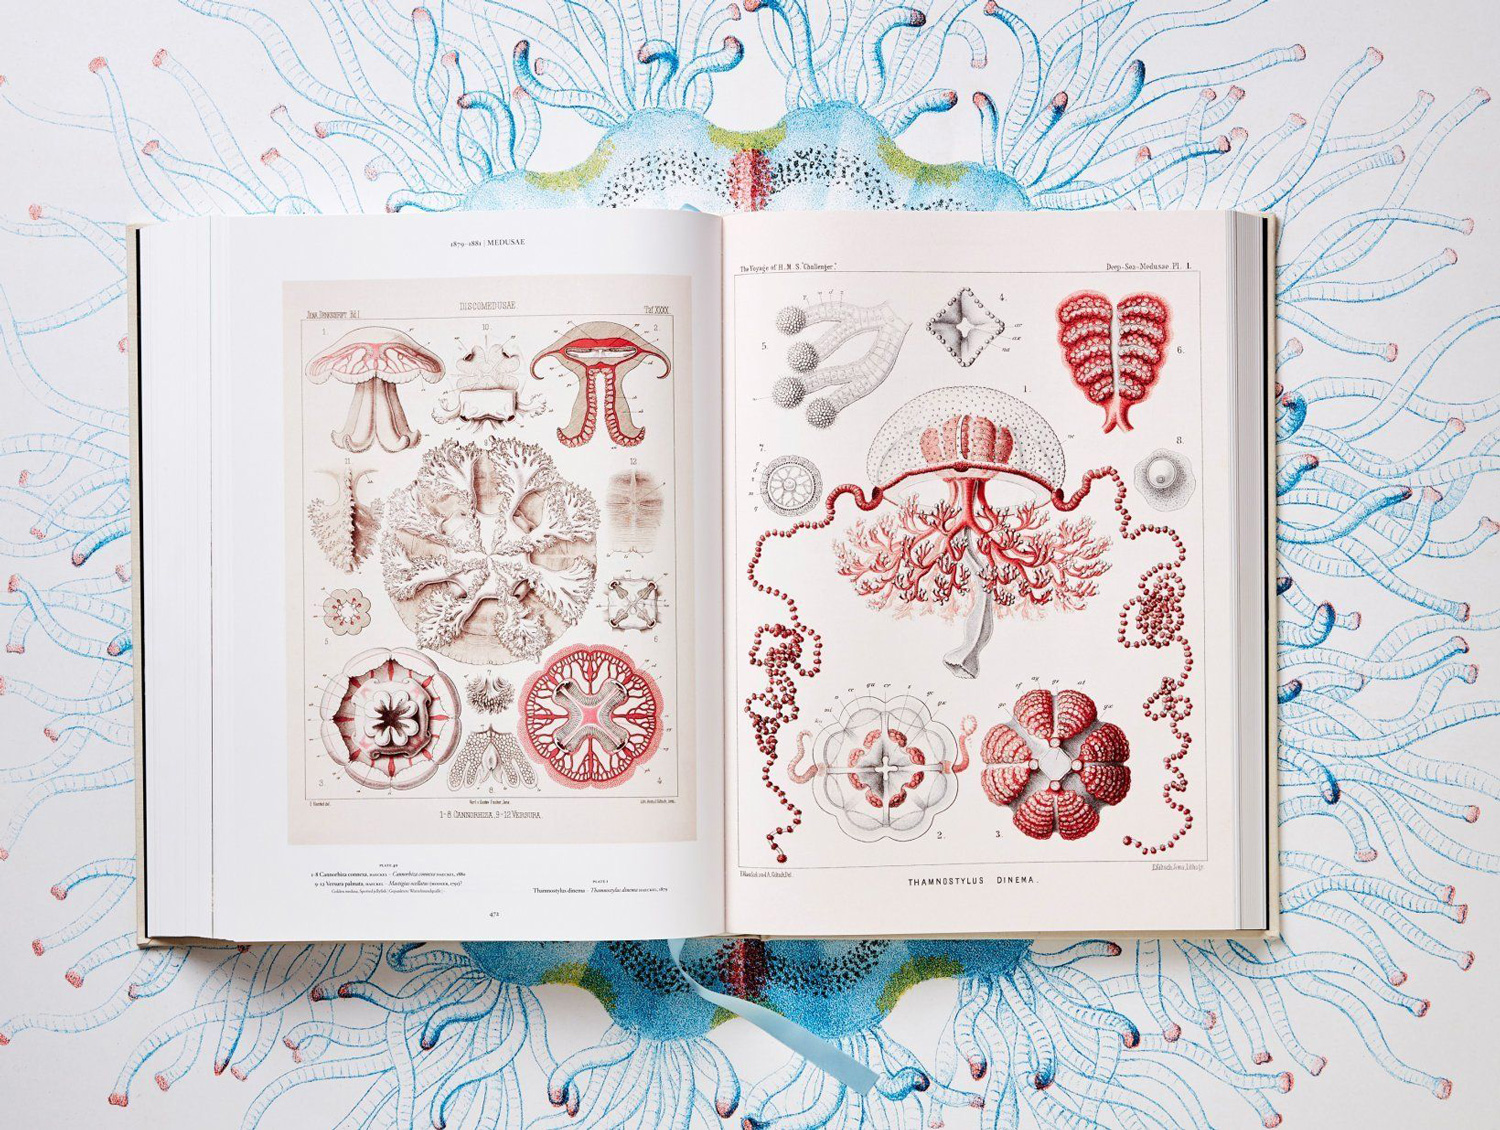 German biologist and artist Ernst Haeckel dedicated his life studying far flung flora and fauna,  dr